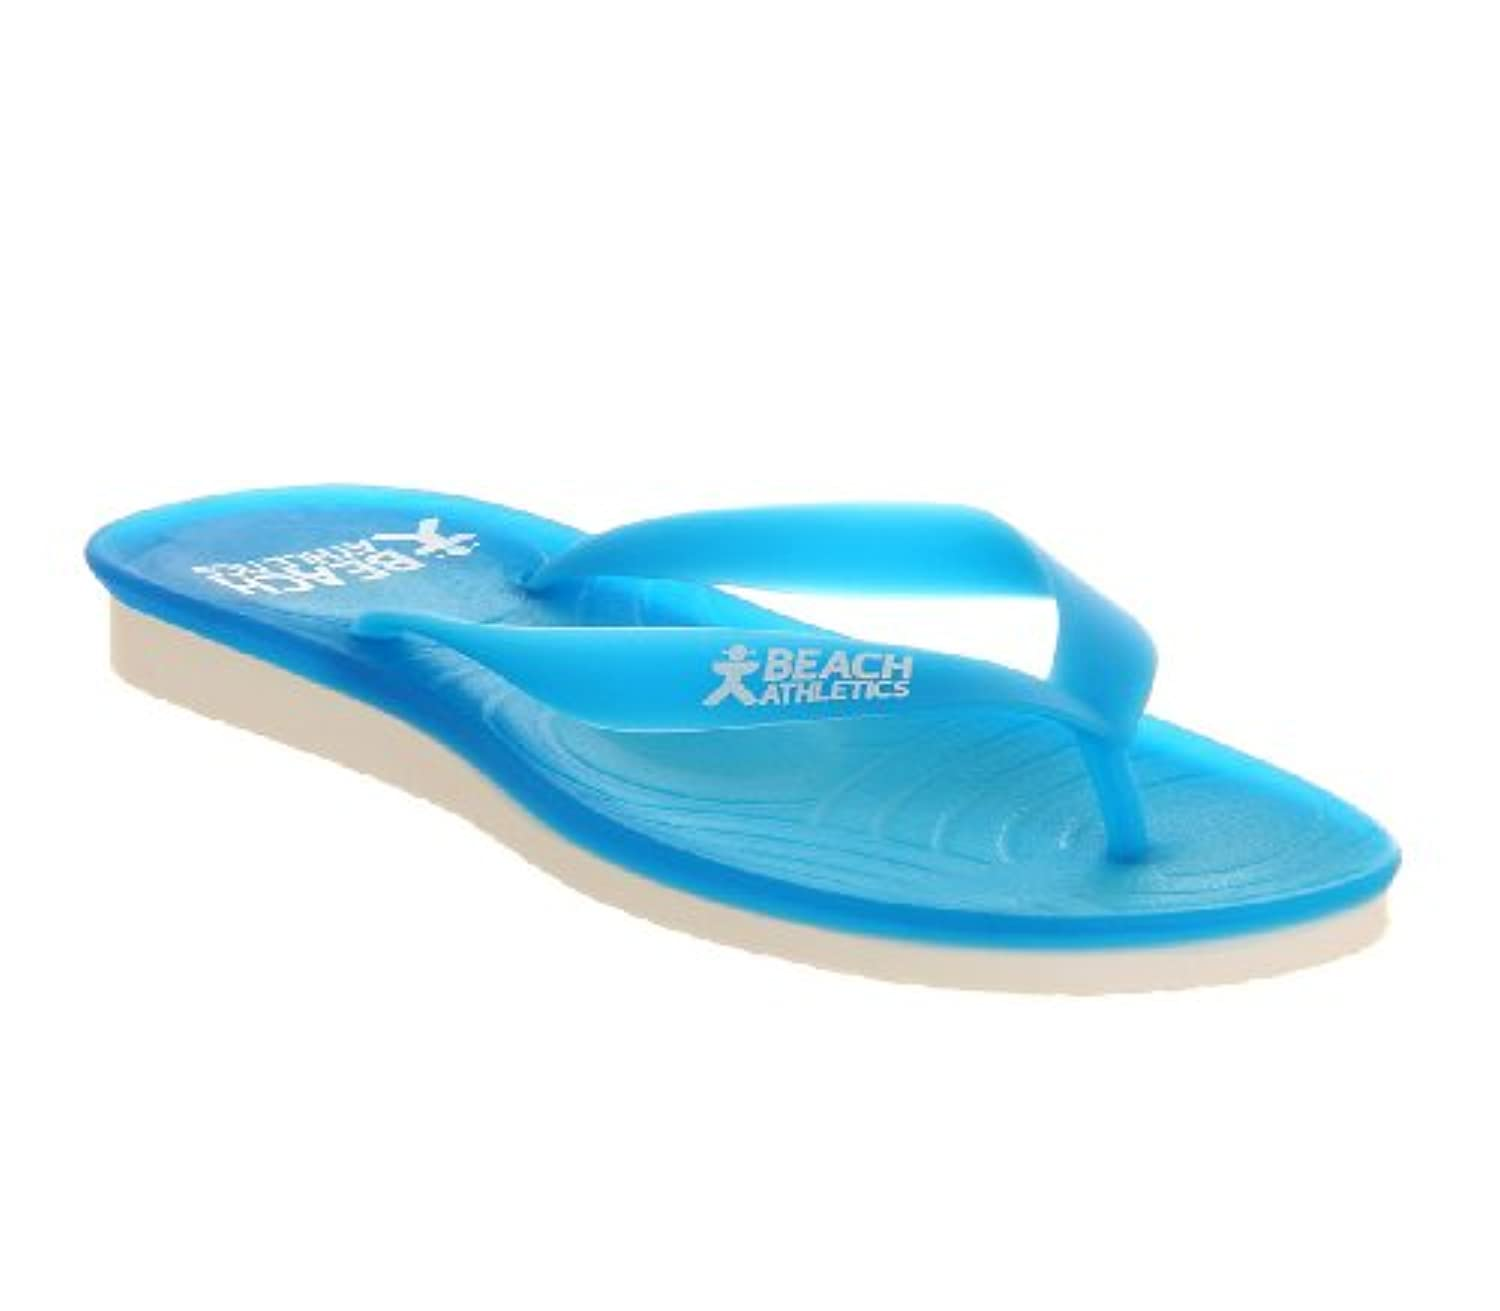 Beach Athletics Sttropez Flip Flop Turq Rubber - 6 UK